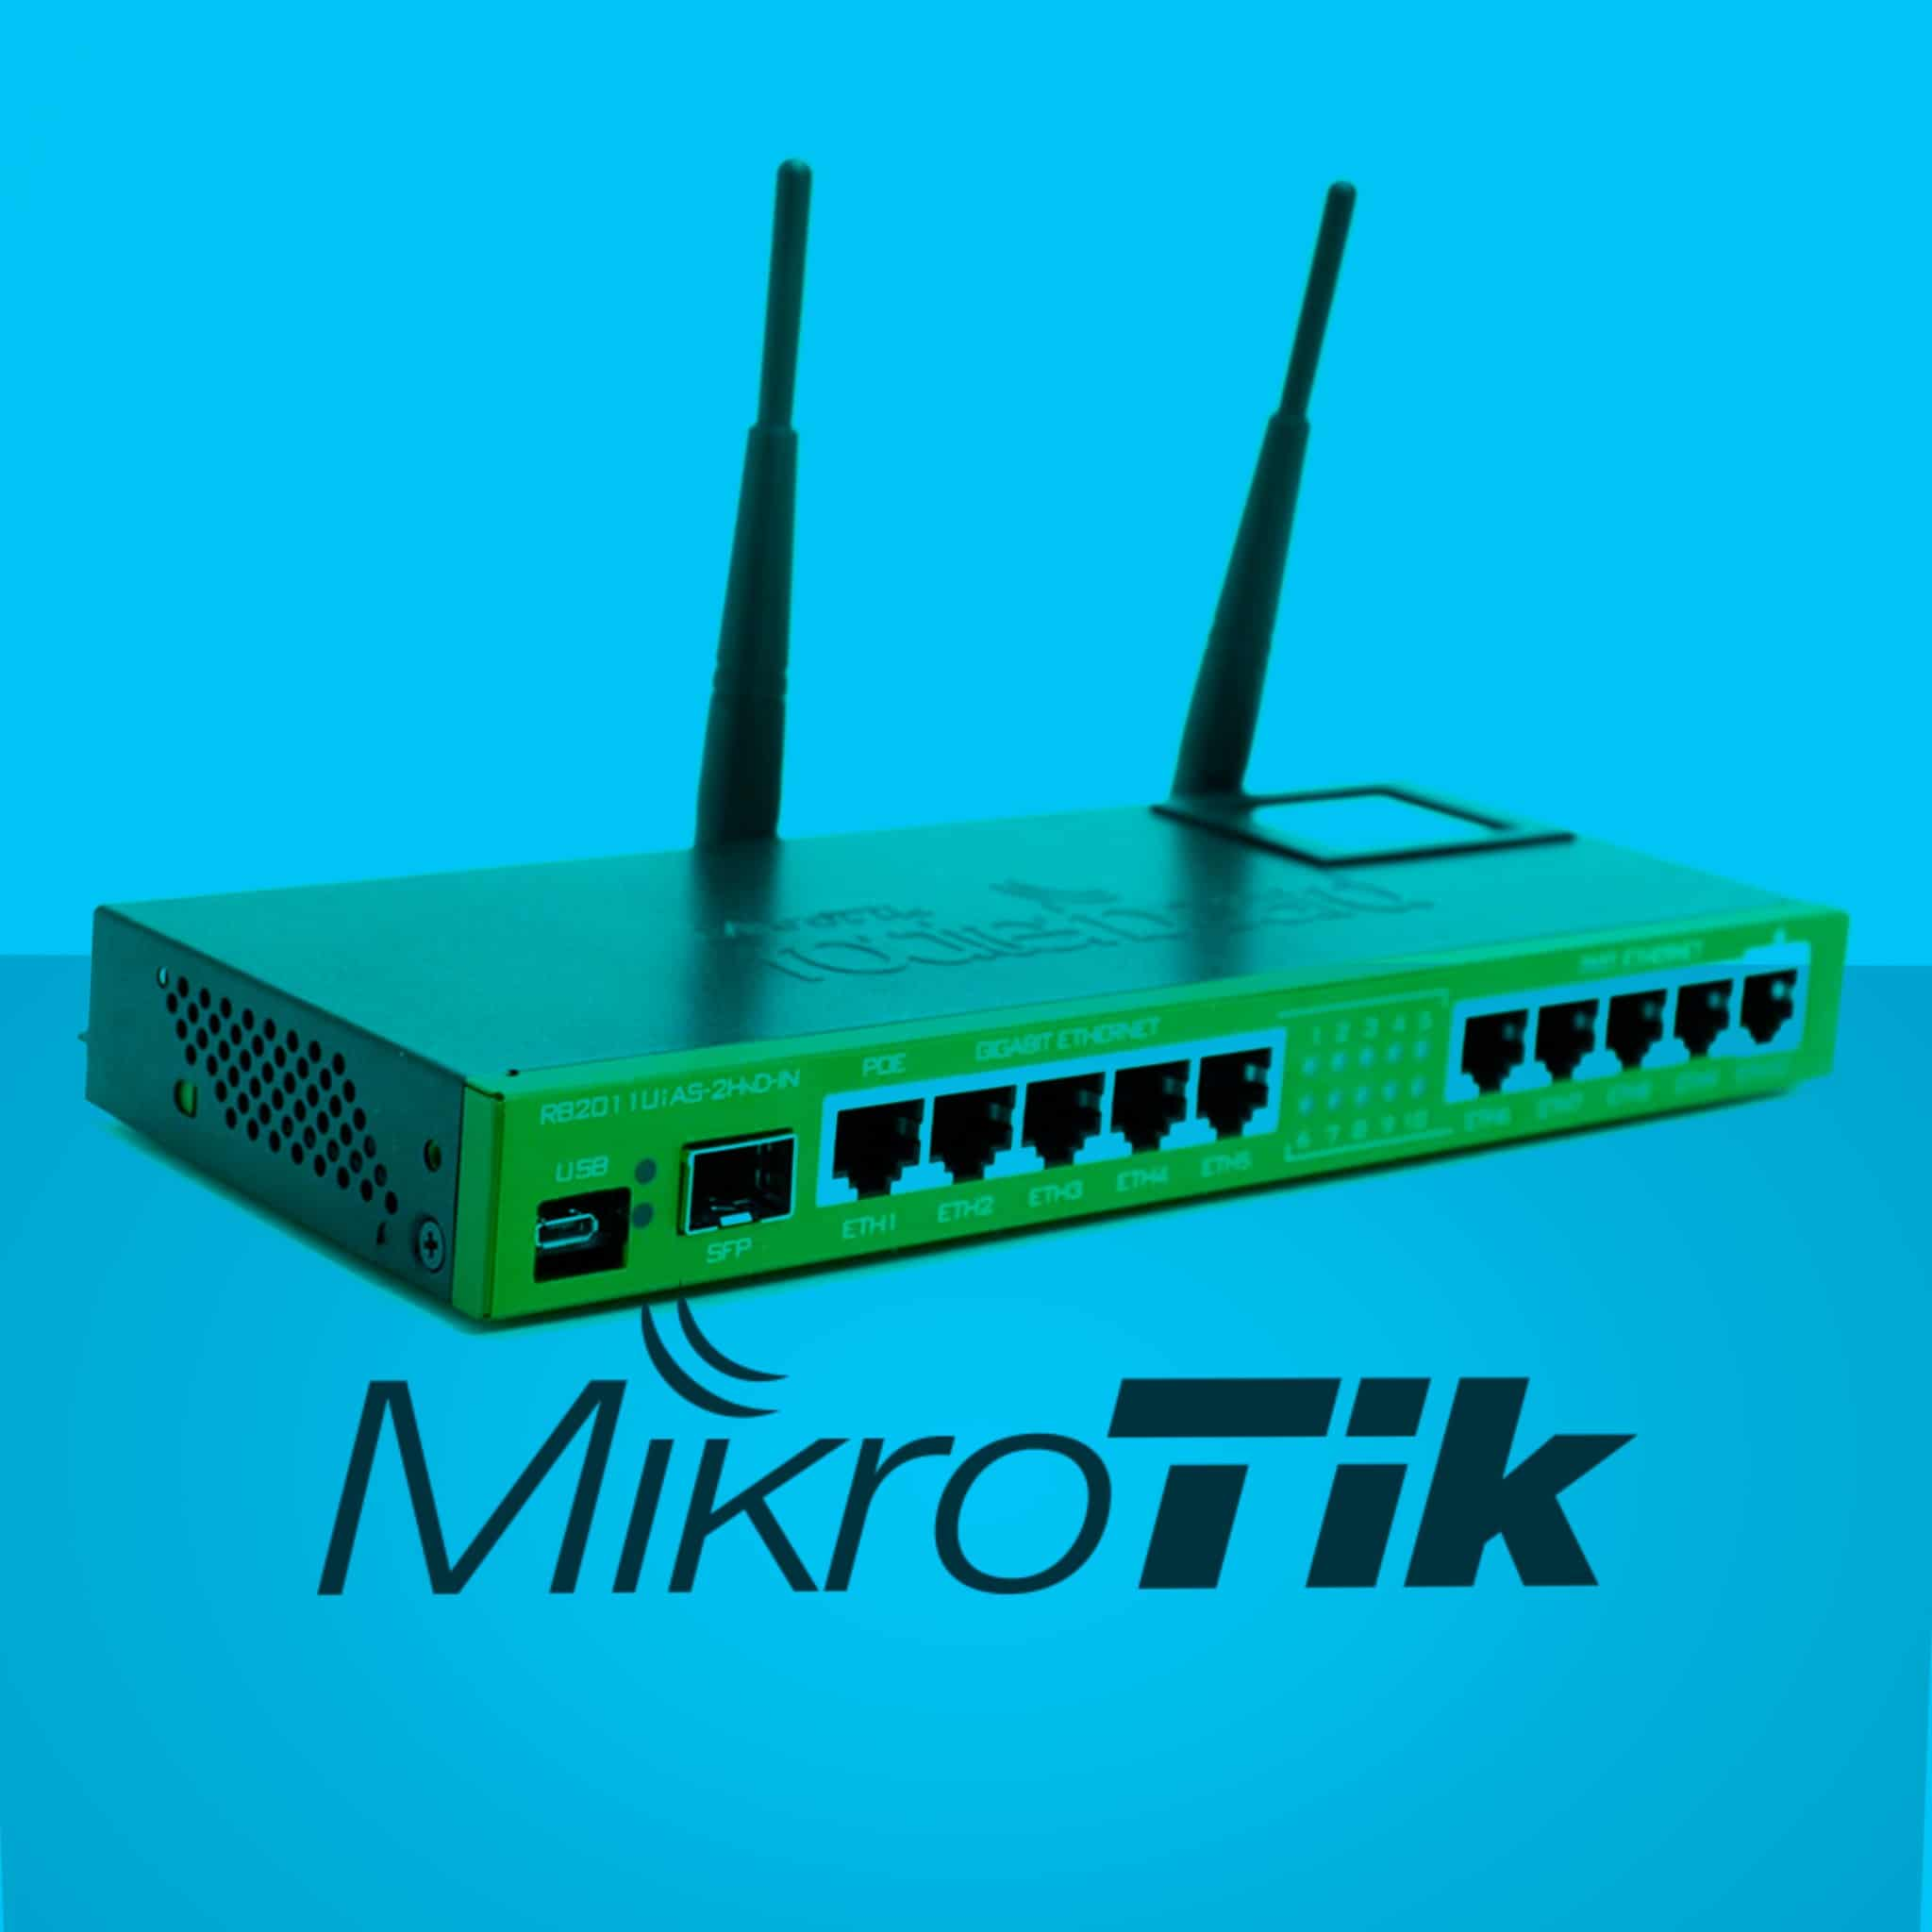 200,000 MikroTik Routers Hacked and Turned Into Crypto-Mining Zombies